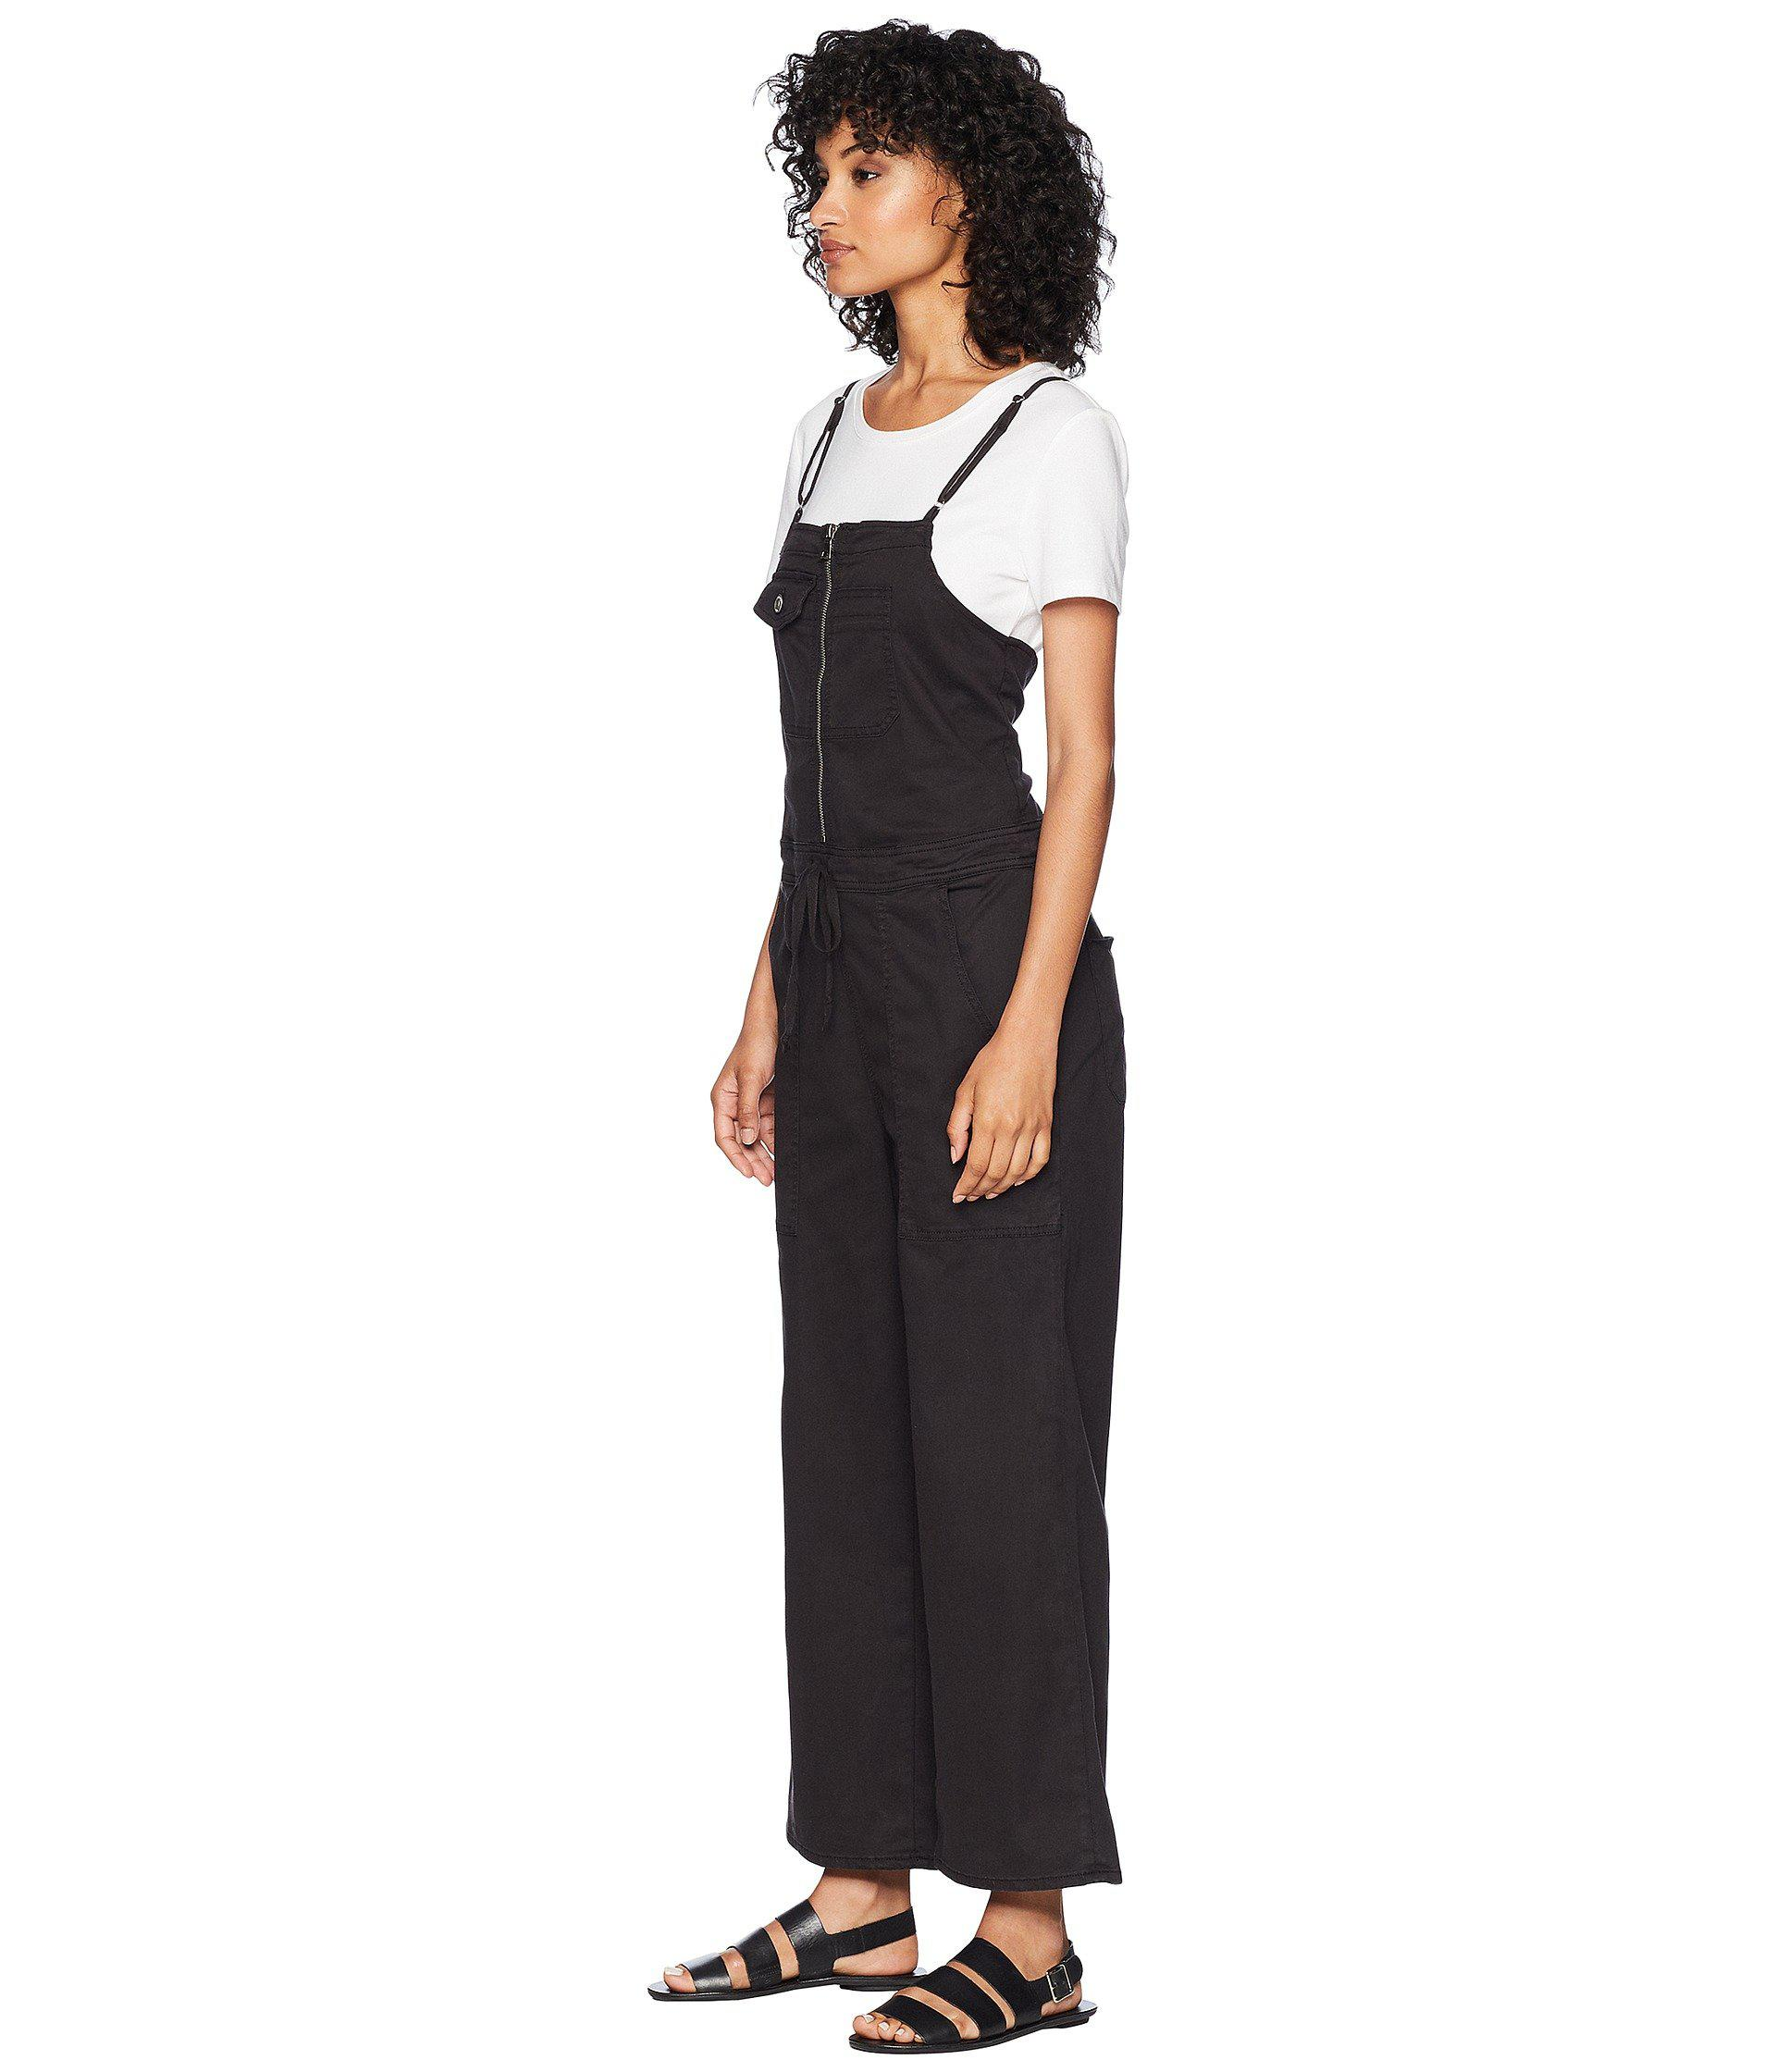 Hudson Womens The Leverage Jumpsuit in Black